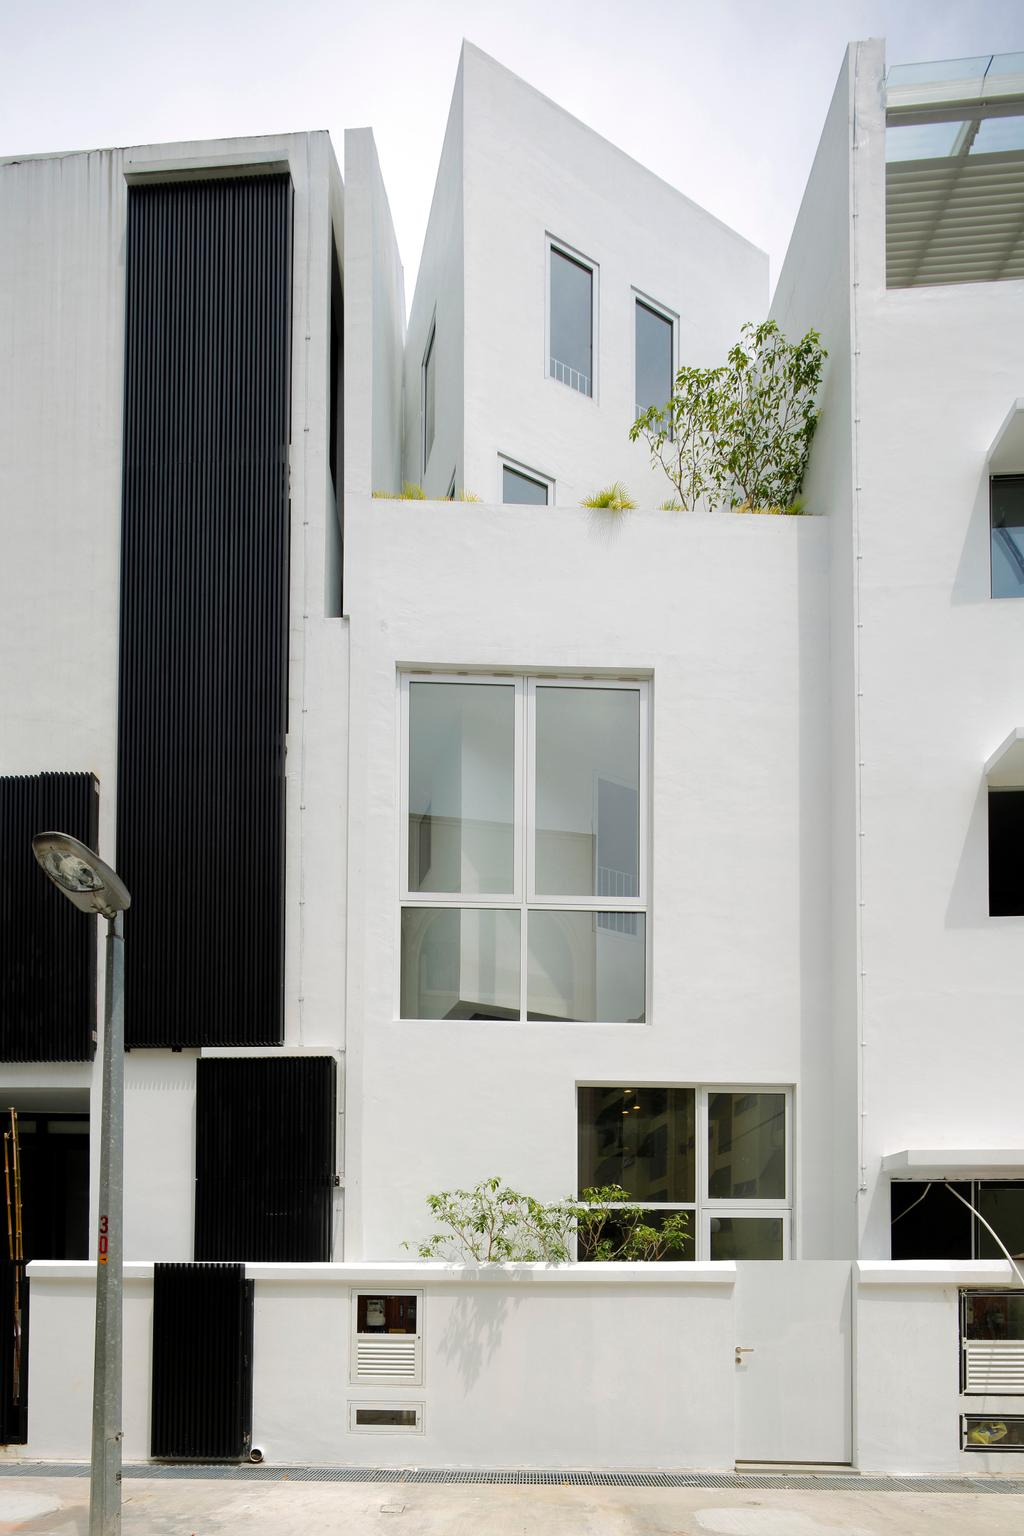 Gallery House, Commercial, Architect, Lekker Architects, Modern, Exterior View, Monochrome Walls